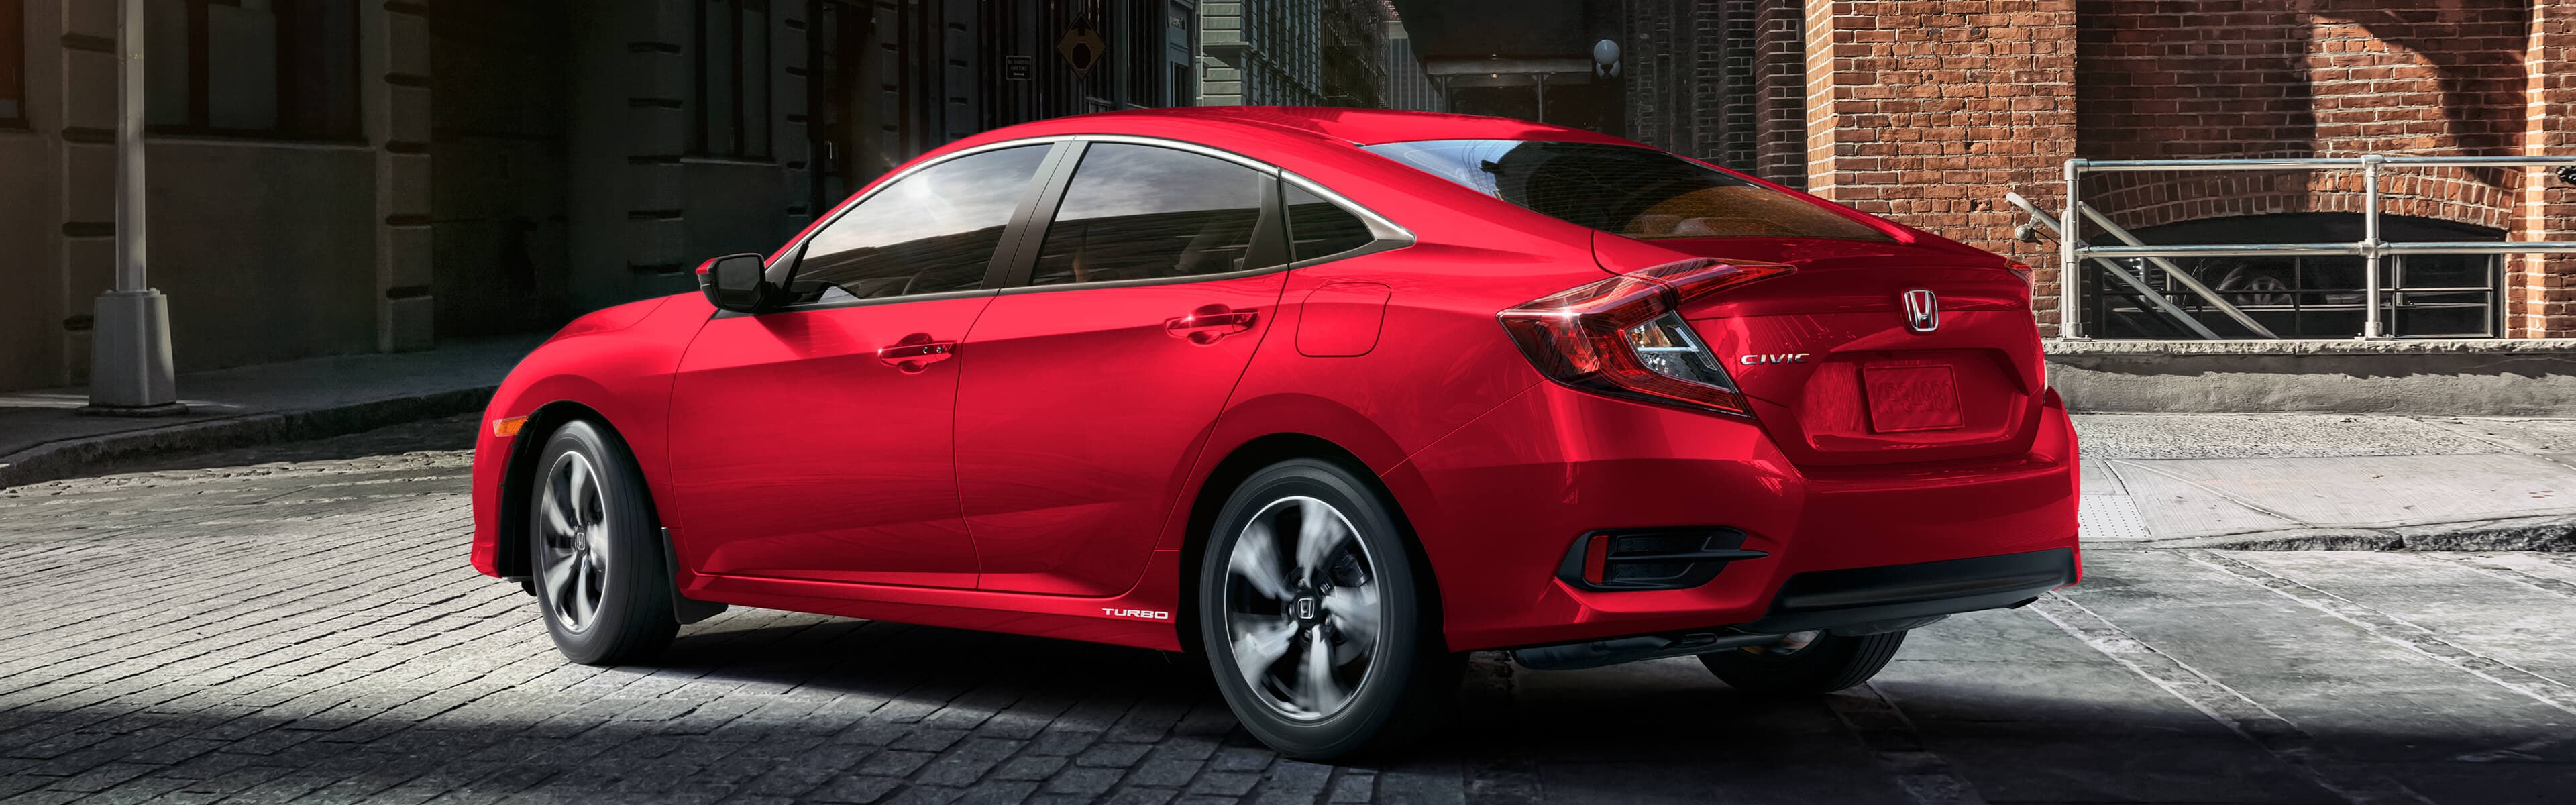 2018 Civic rear exterior